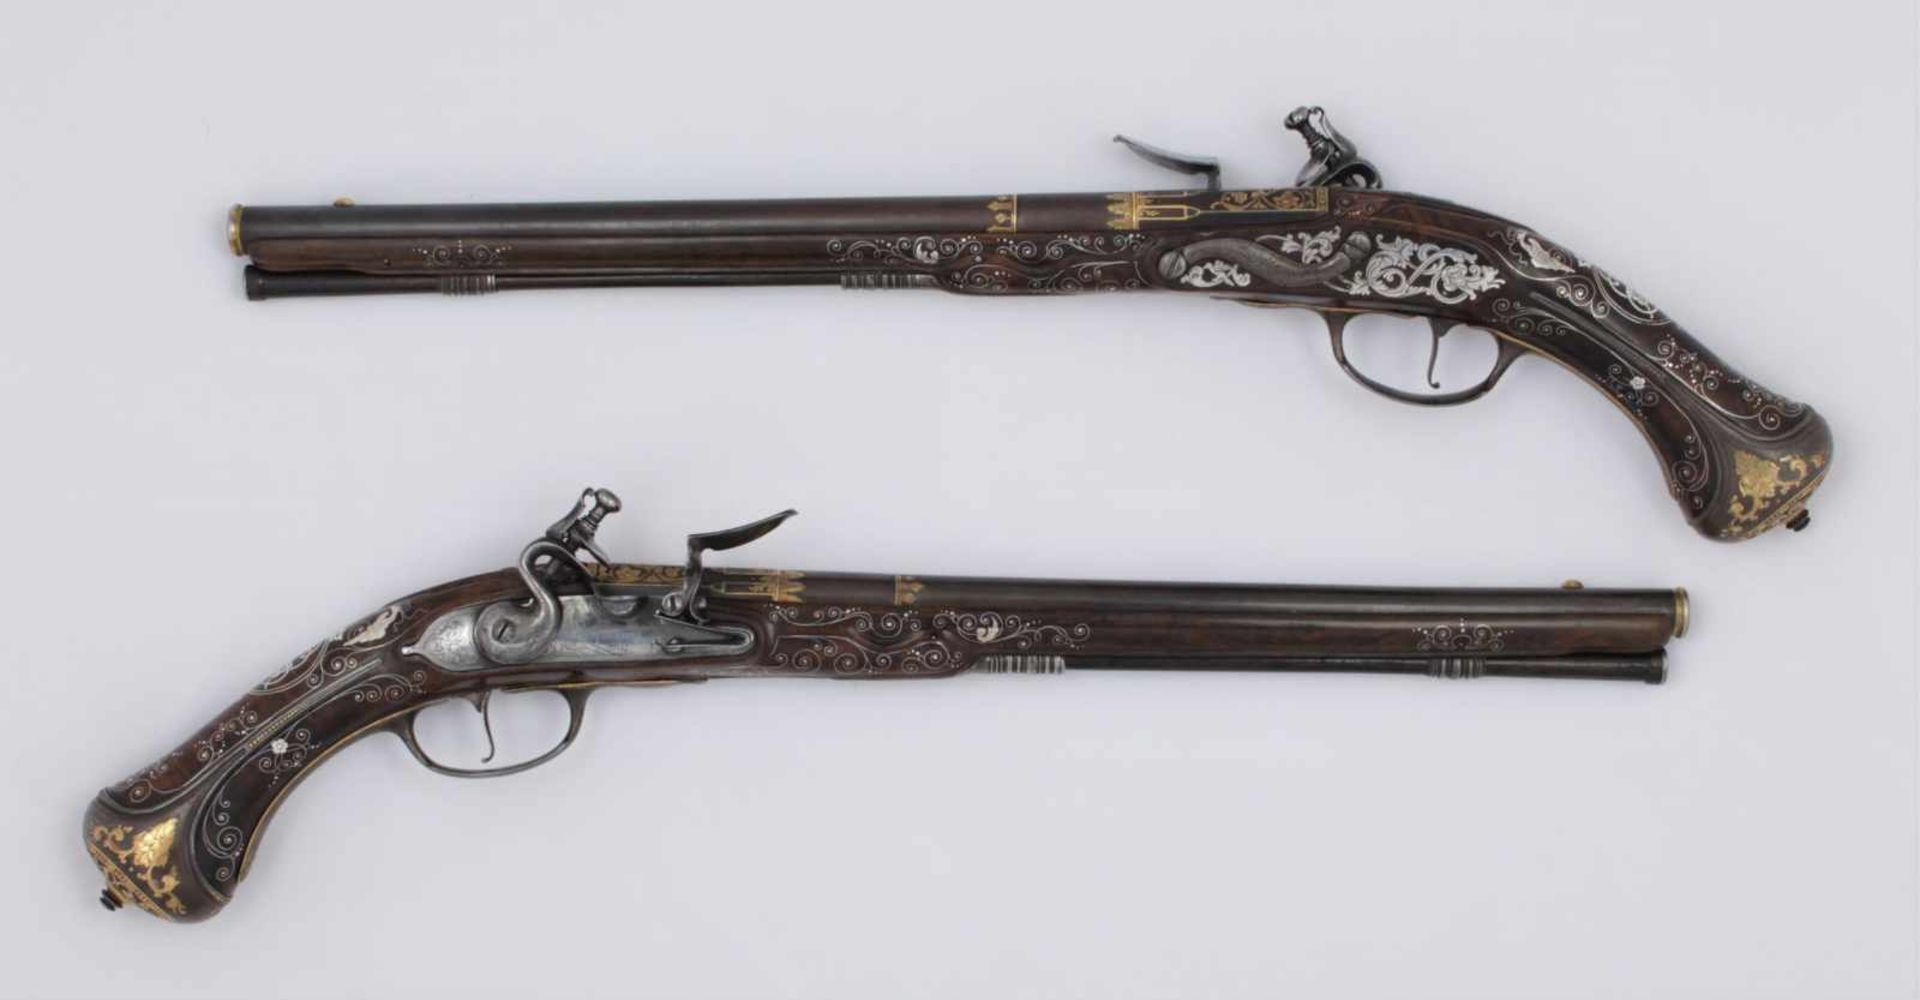 Los 45 - A pair of luxurious flintlock pistols La Marre A VIENNE Date: circa 1680 Guns decorated with